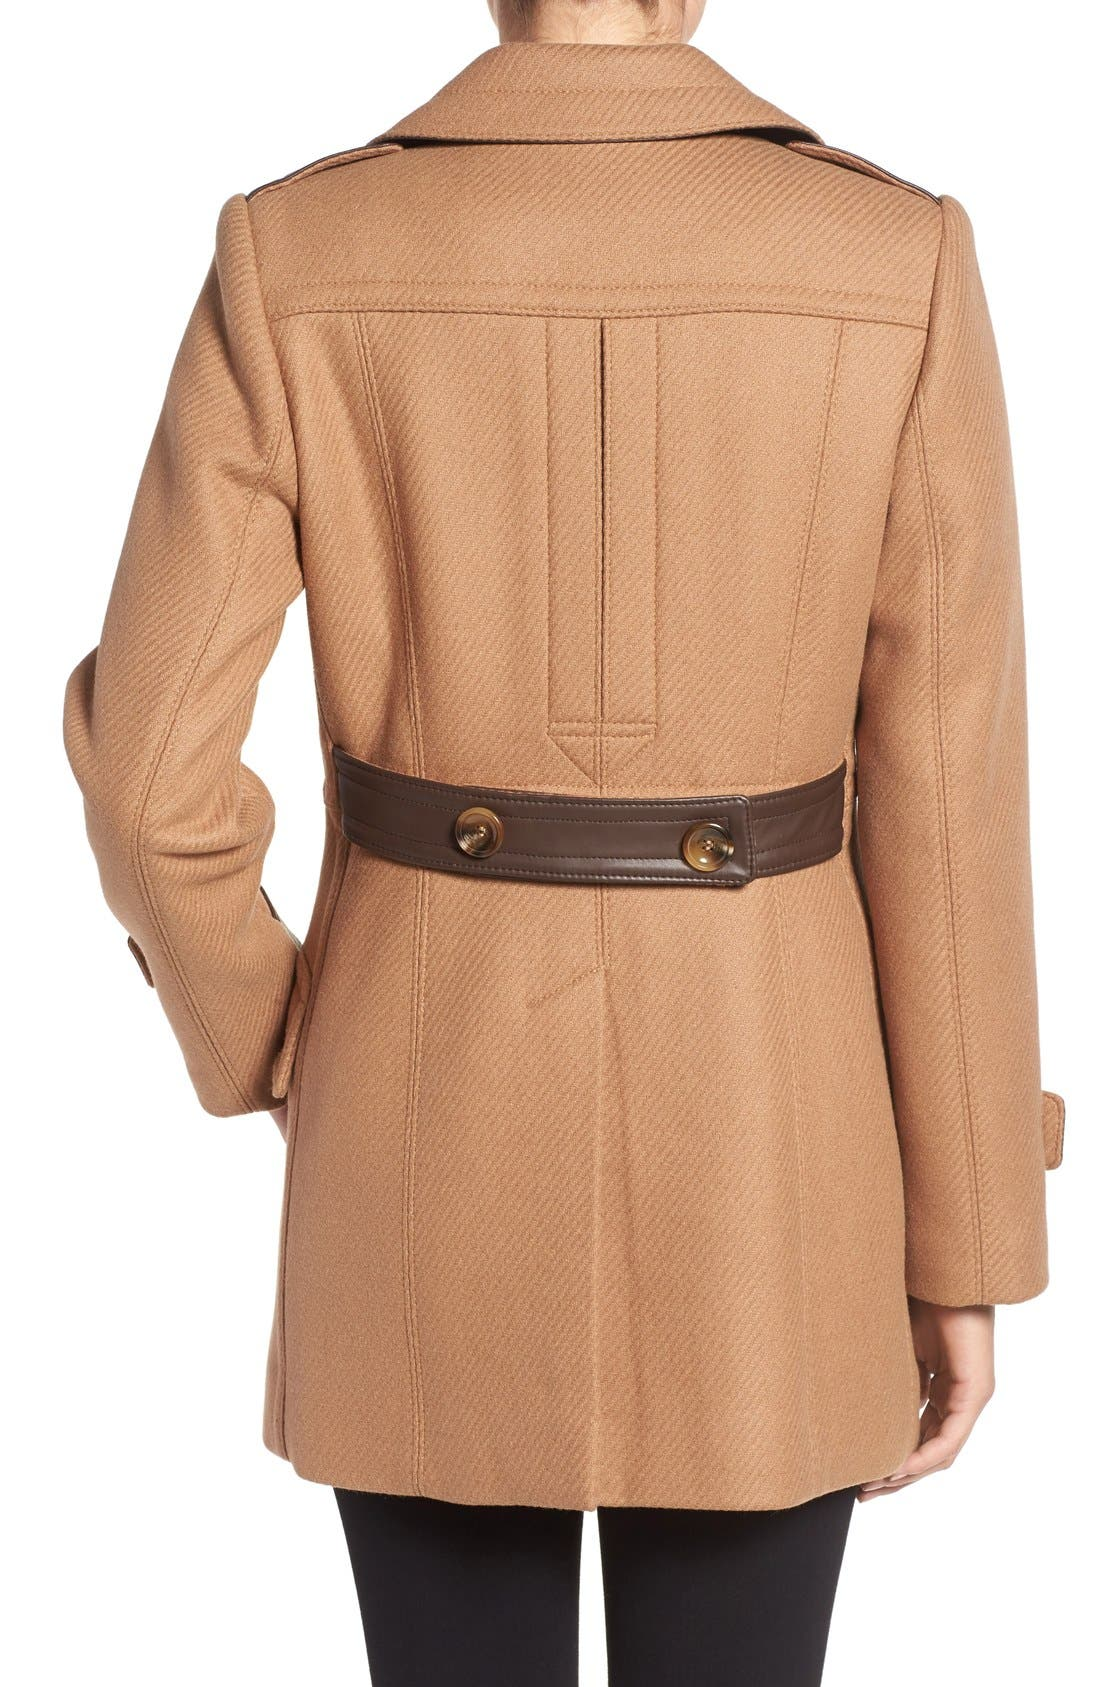 'Chloe' Wool Blend Peacoat,                             Alternate thumbnail 2, color,                             Camel